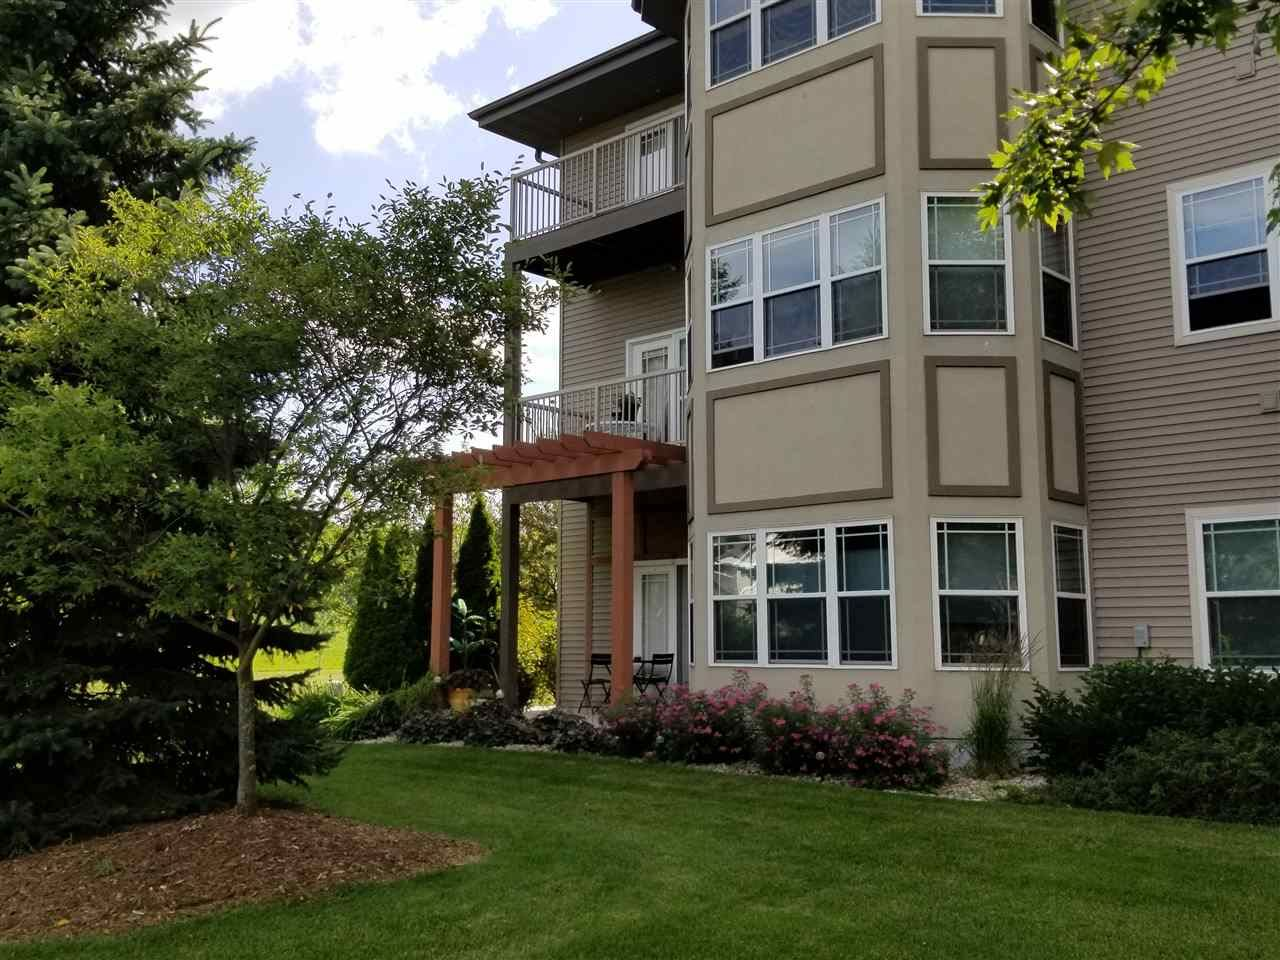 6701 Fairhaven Rd #110, Madison, WI 53719 - #: 1887085